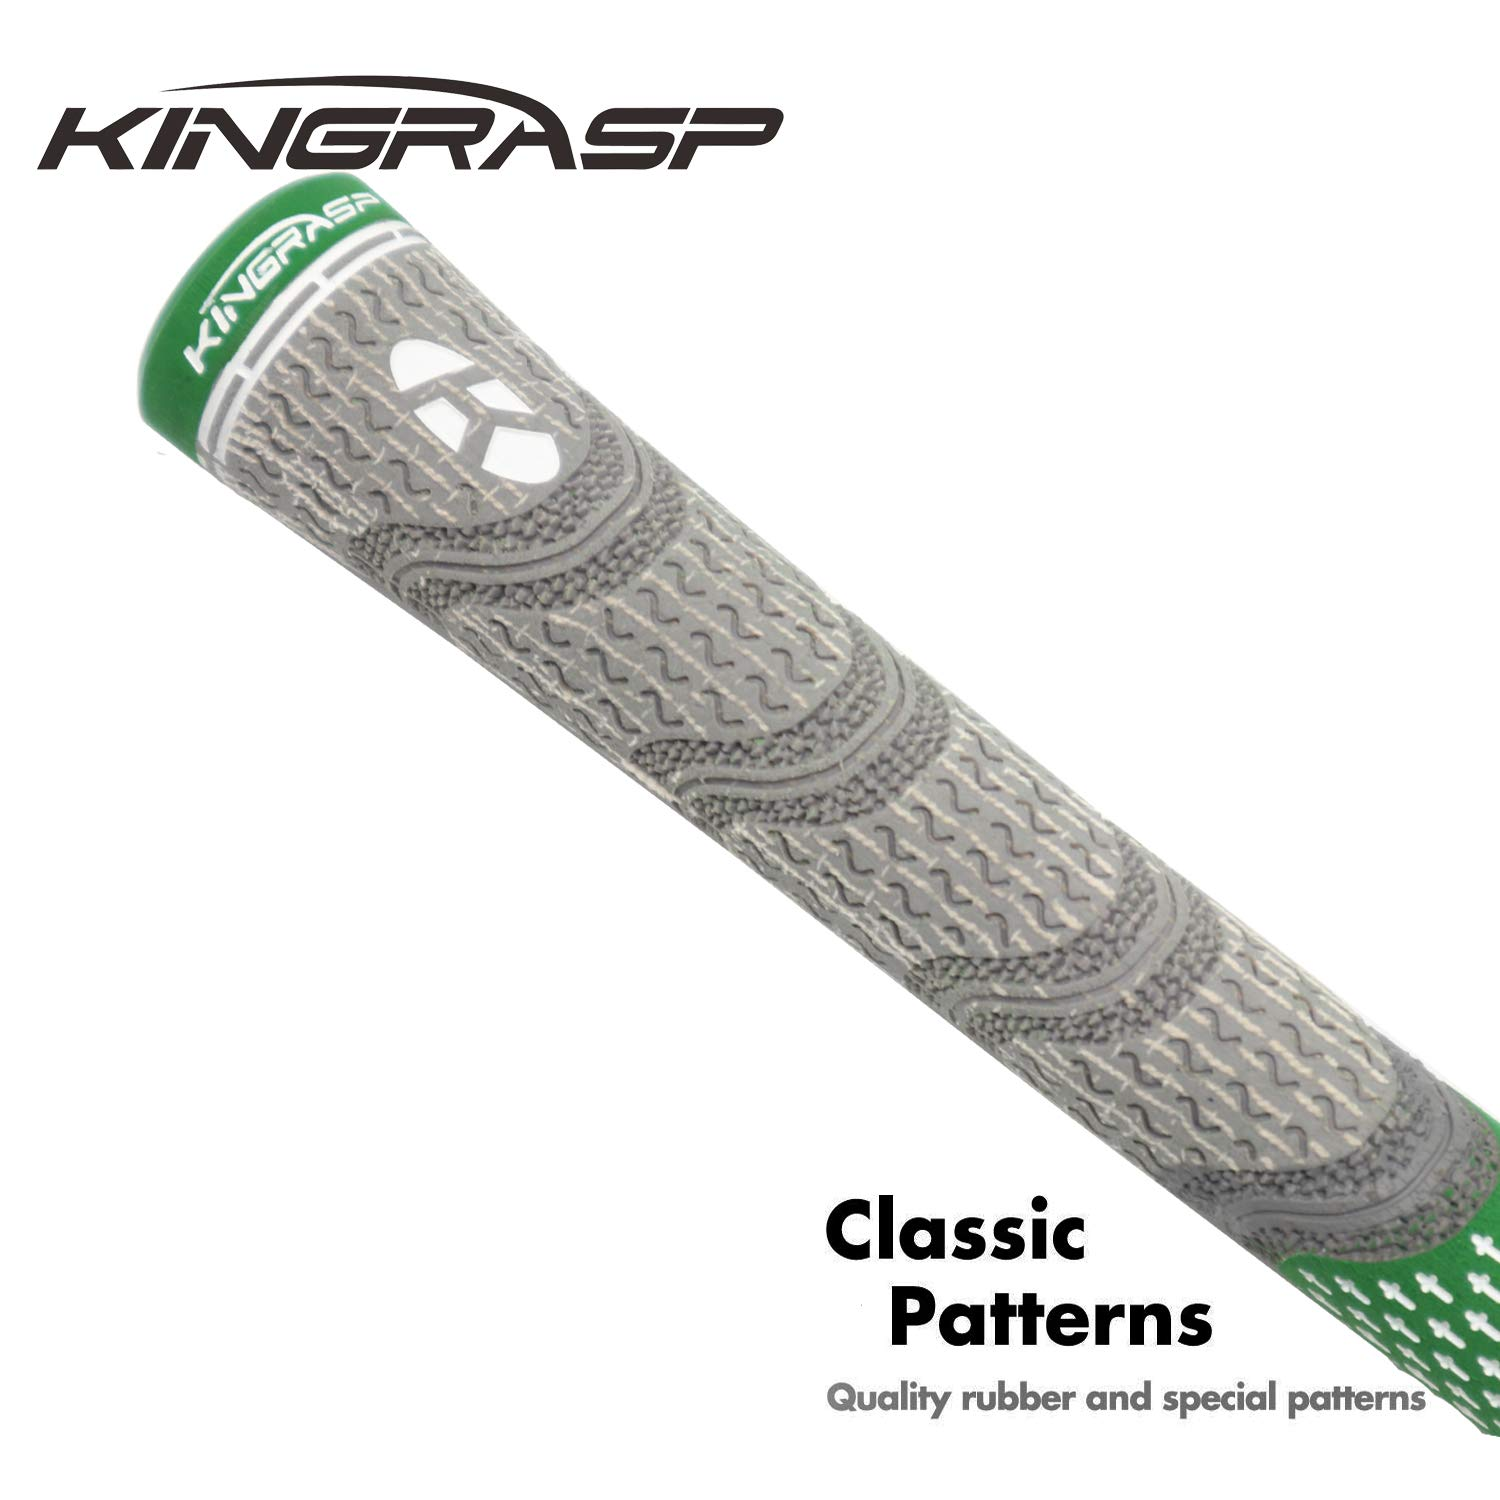 KINGRASP Multi Compound Golf Grips Set of 13 Golf Grip Standard midsize Size - All Weather Rubber Golf Club Grips Ideal for Clubs Wedges Drivers Irons Hybrids (Gray/Green, Standard) by KINGRASP (Image #4)